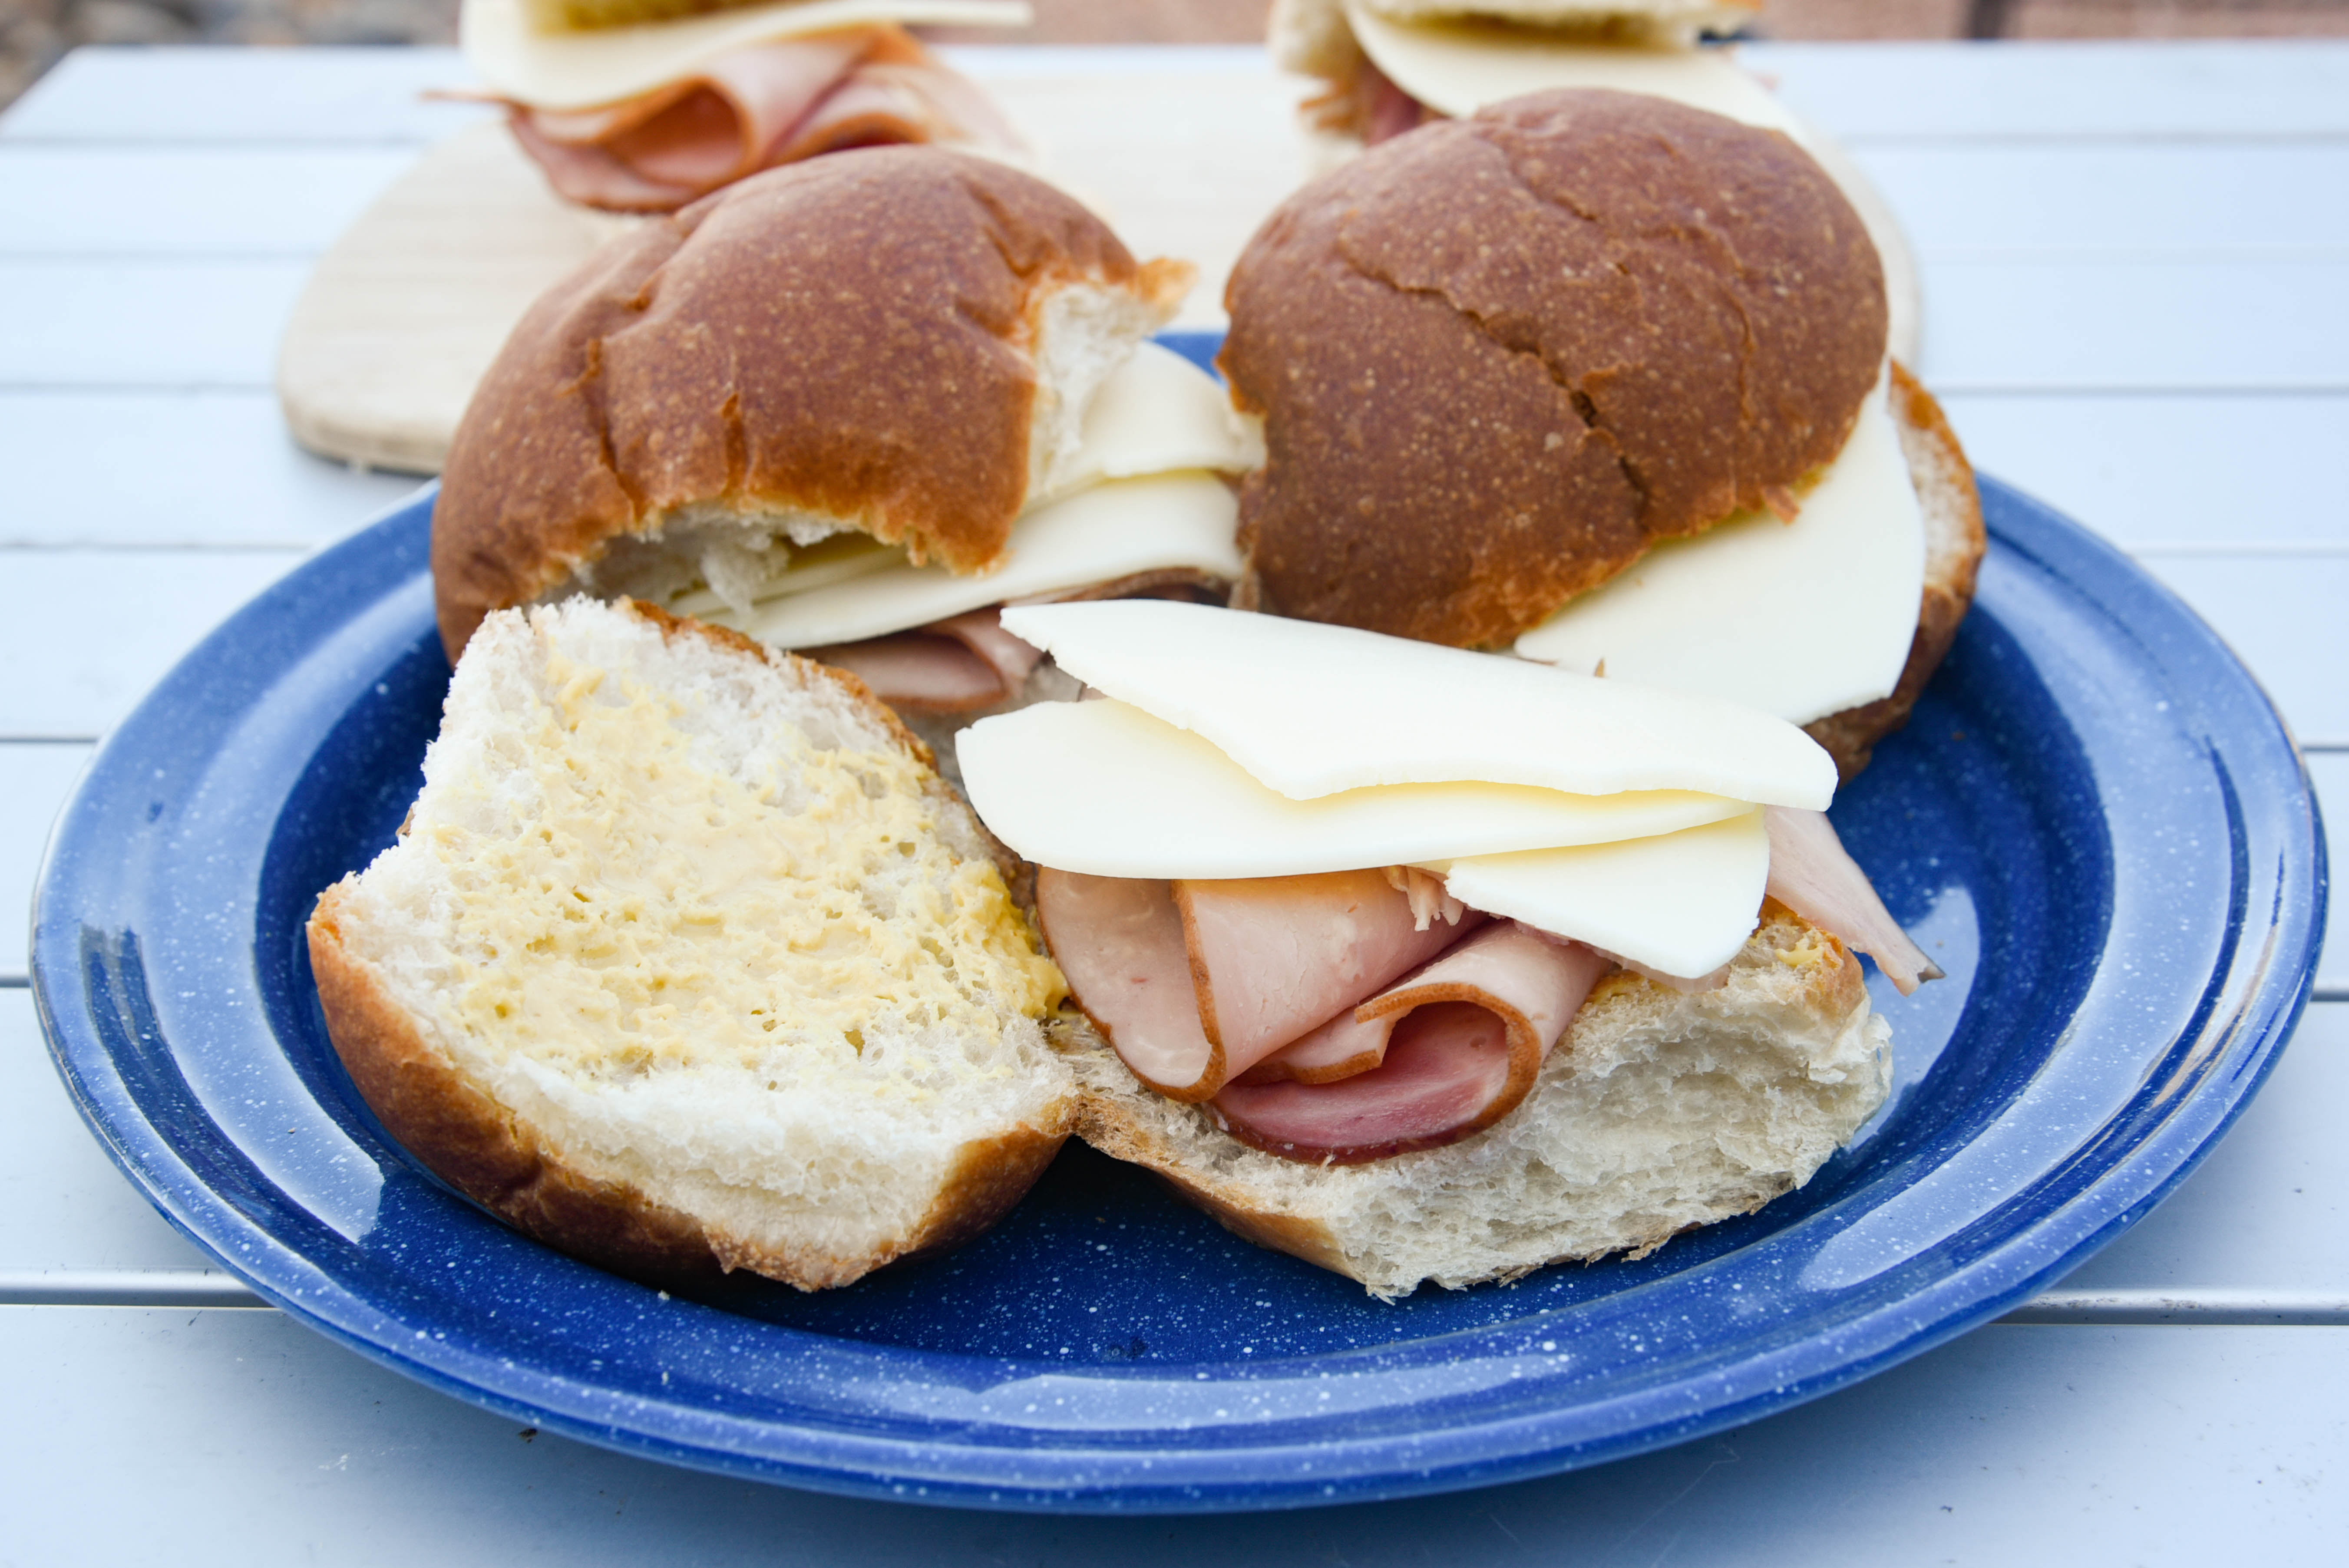 Rolls with ham and cheese added.